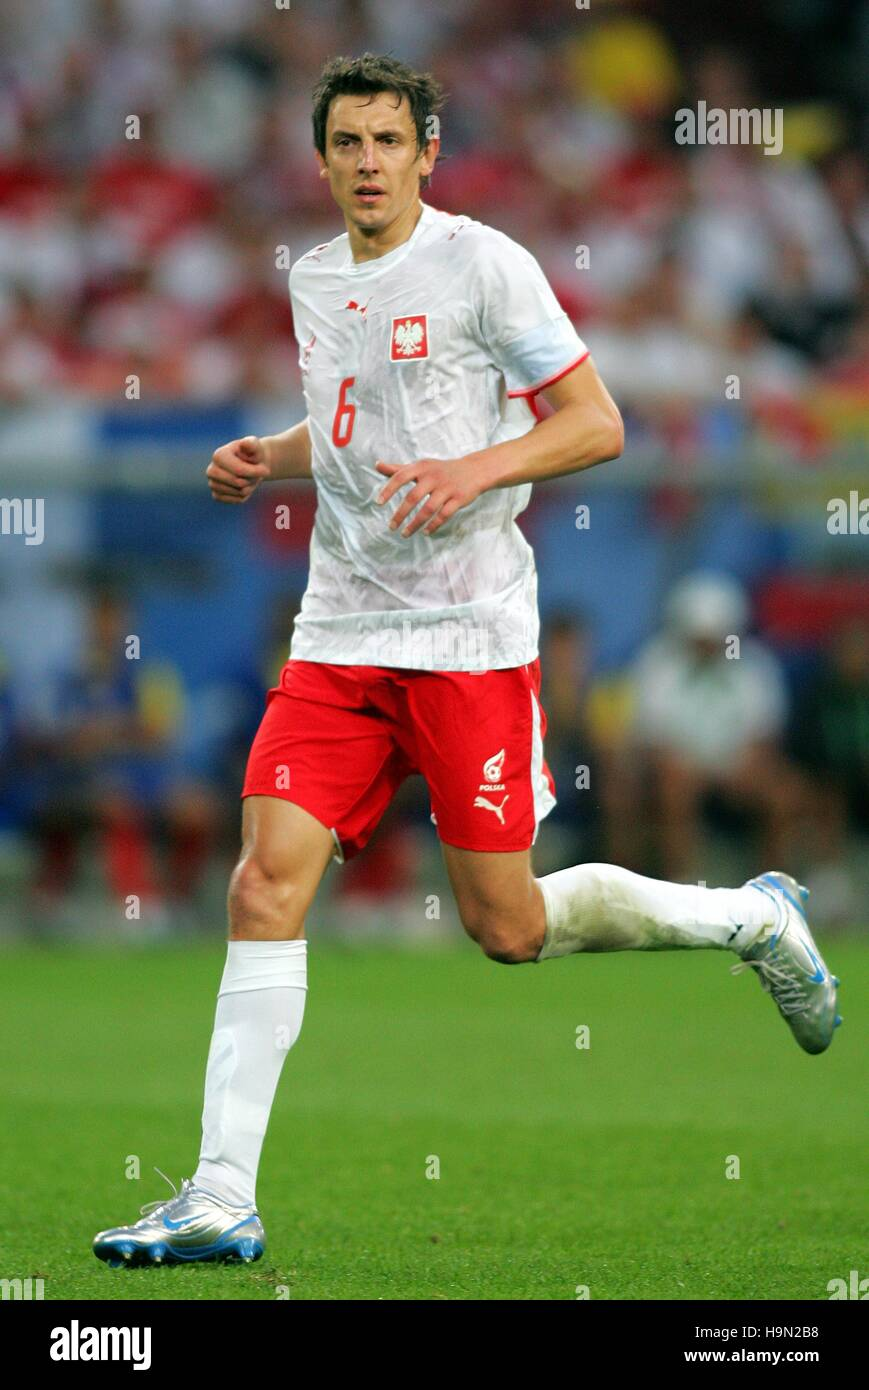 JACEK BAK POLAND & AL-RAYYAN WORLD CUP GELSENKIRCHEN GERMANY 09 June 2006 Stock Photo